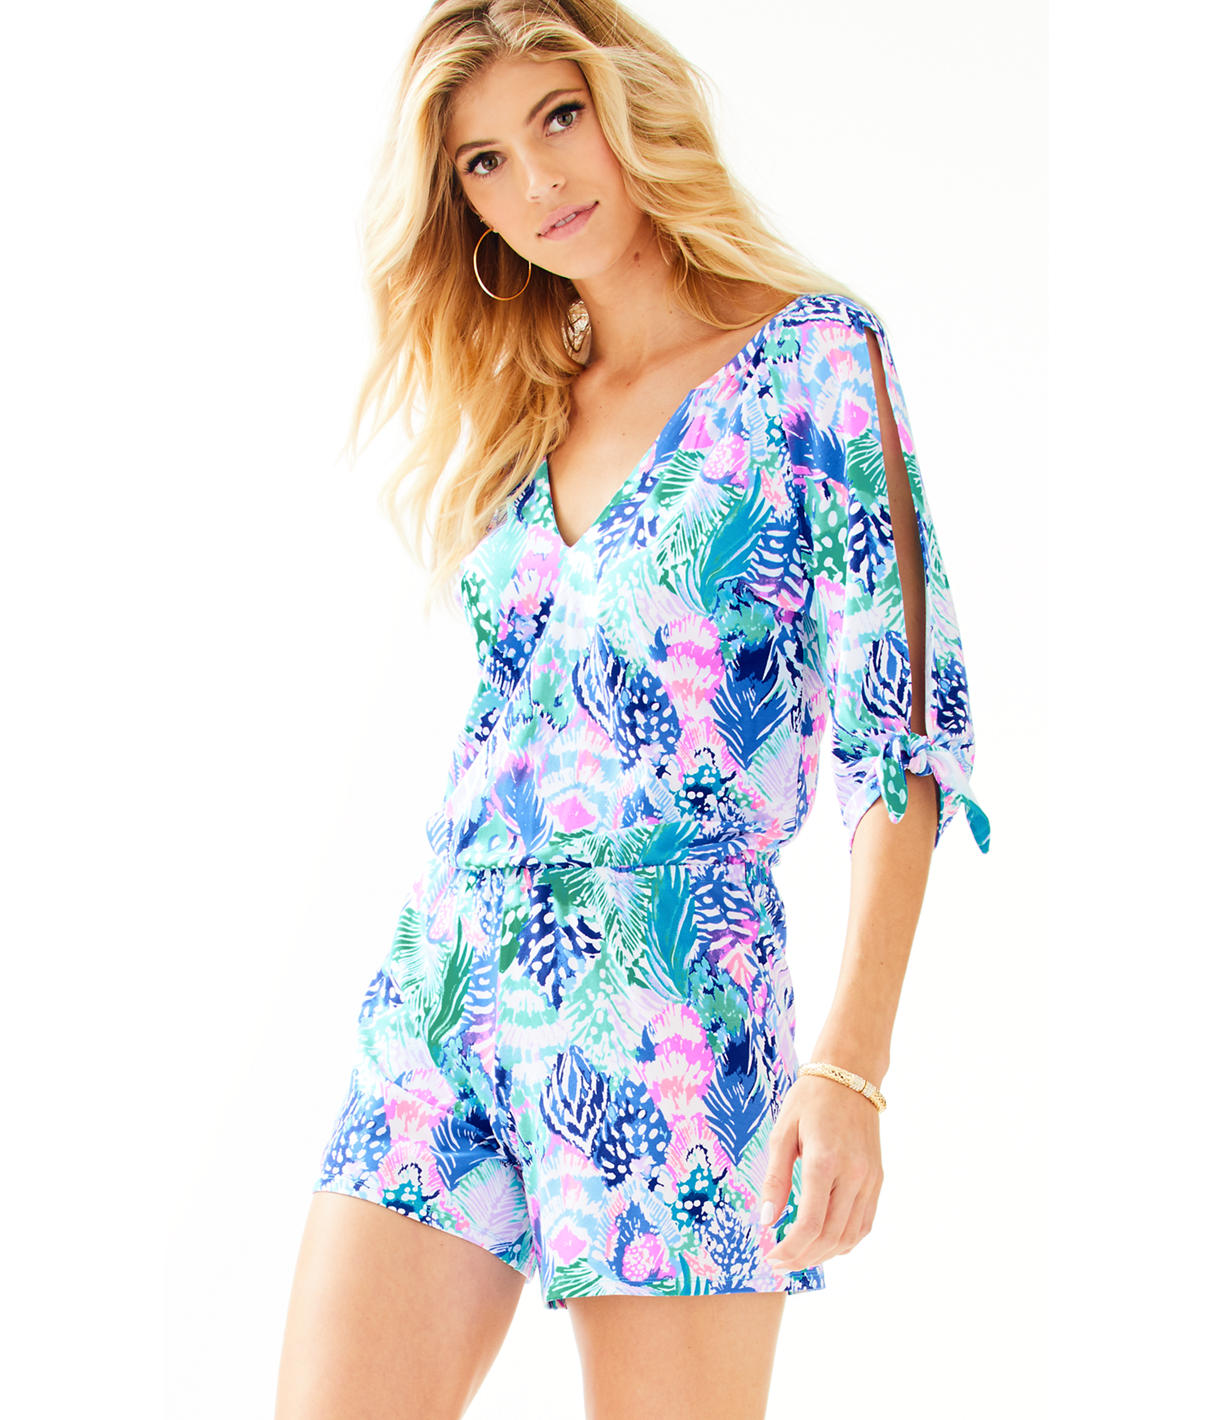 Lilly Pulitzer Lilly Pulitzer Womens Bryce Romper